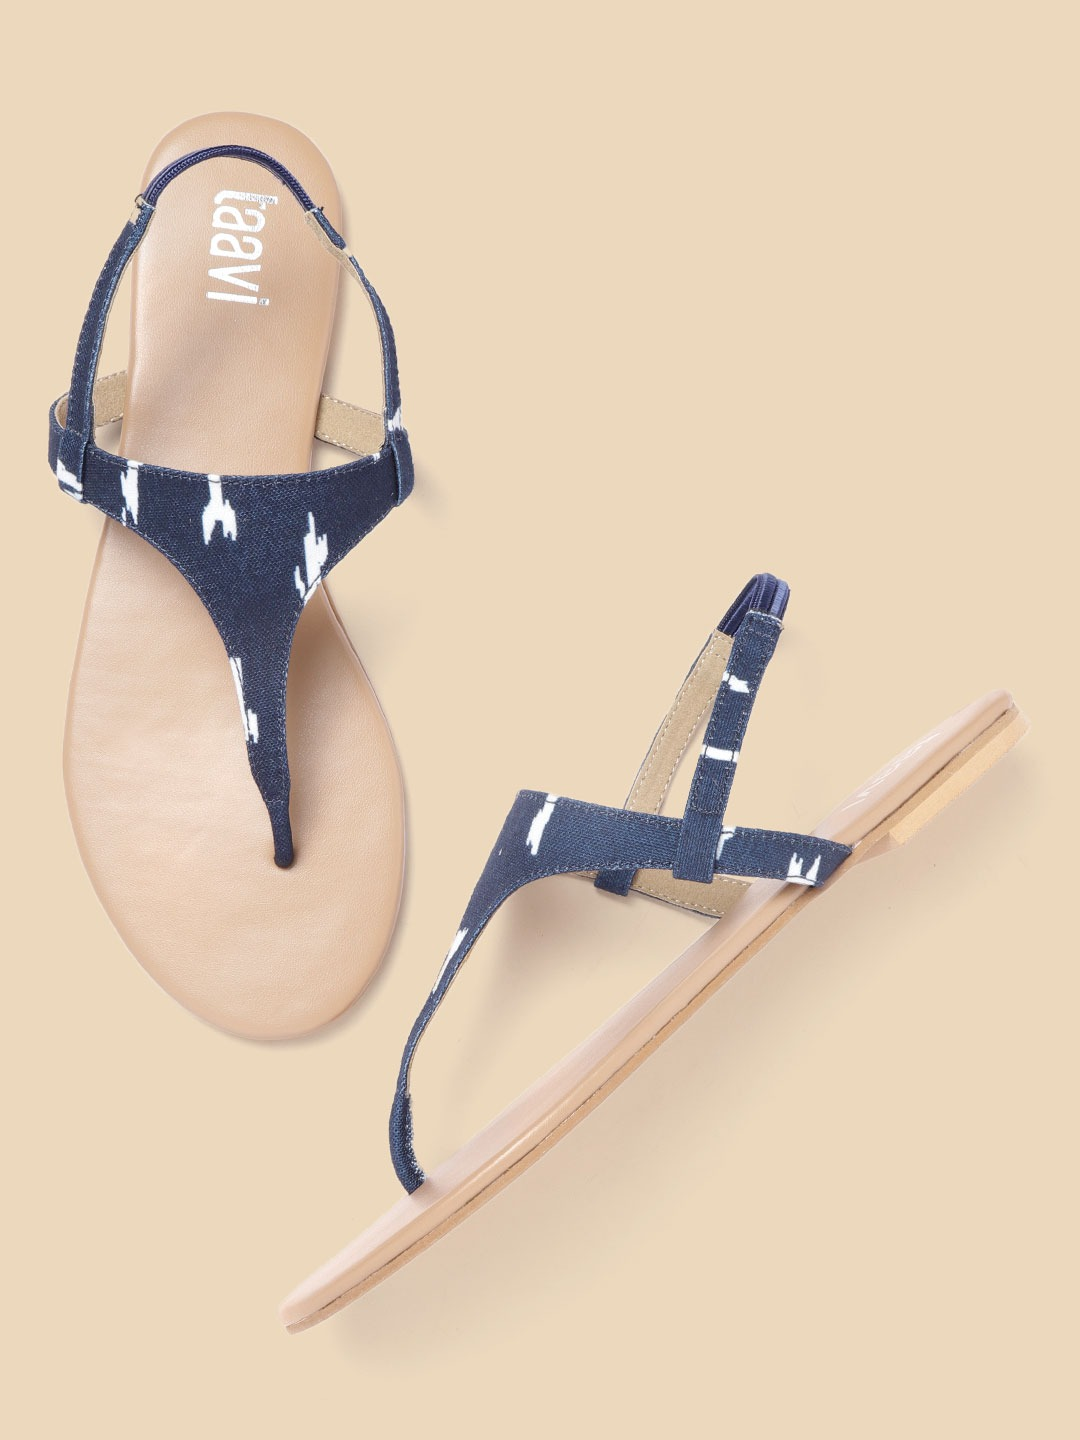 Navy Blue and White Printed T-Strap Flats